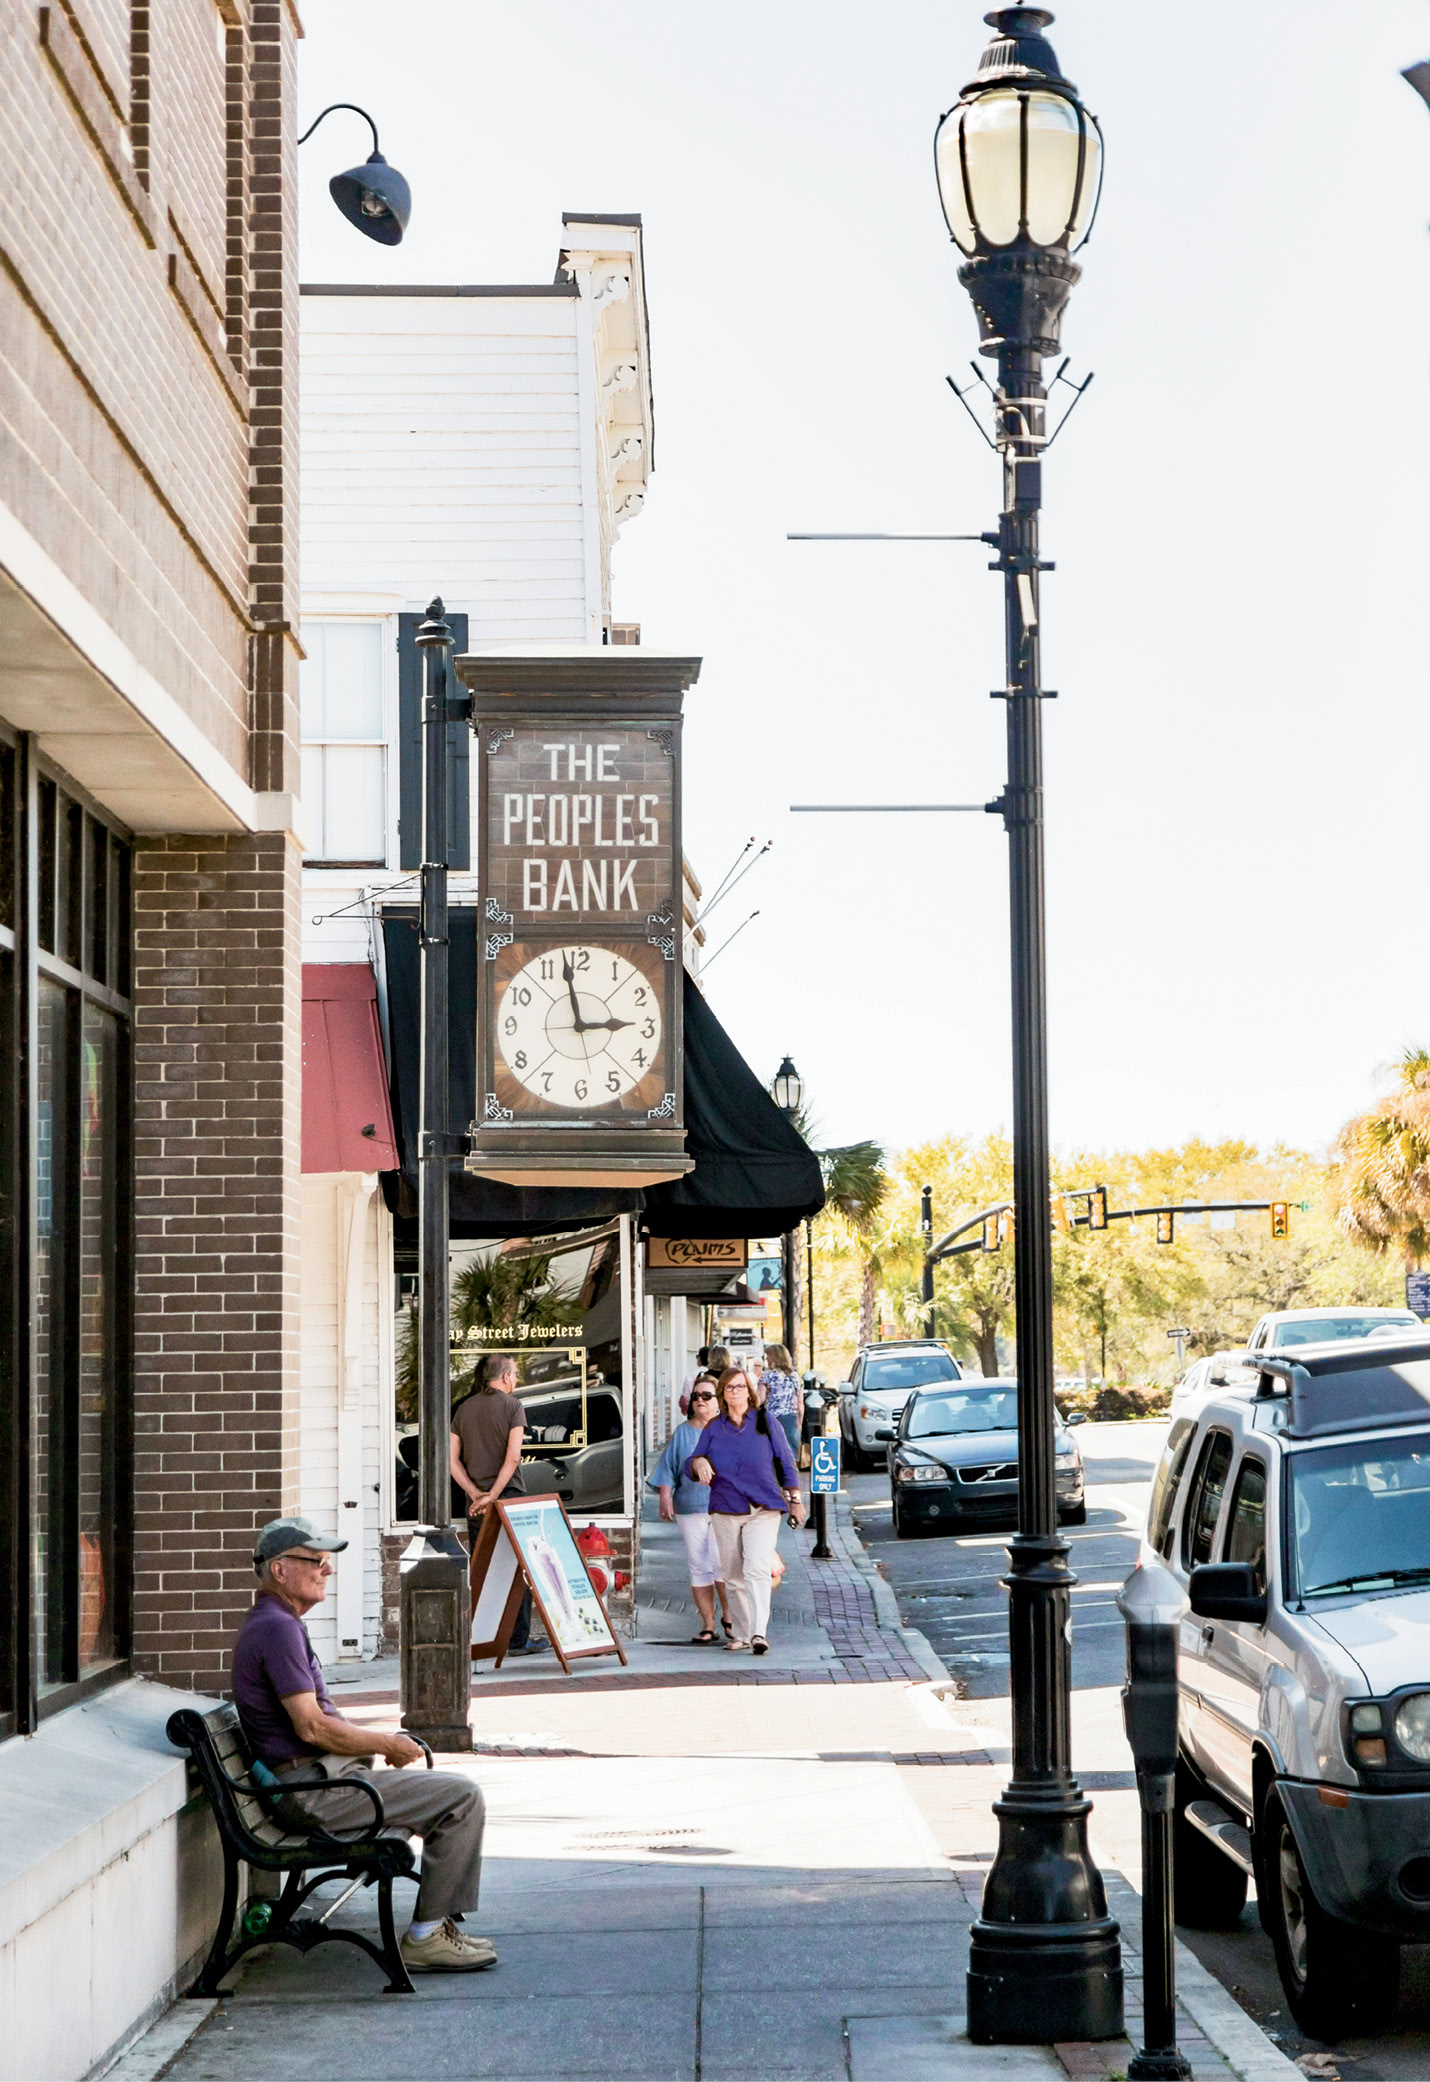 A view of Beaufort's riverfront downtown and Bay Street lined with retail shops and restaurants